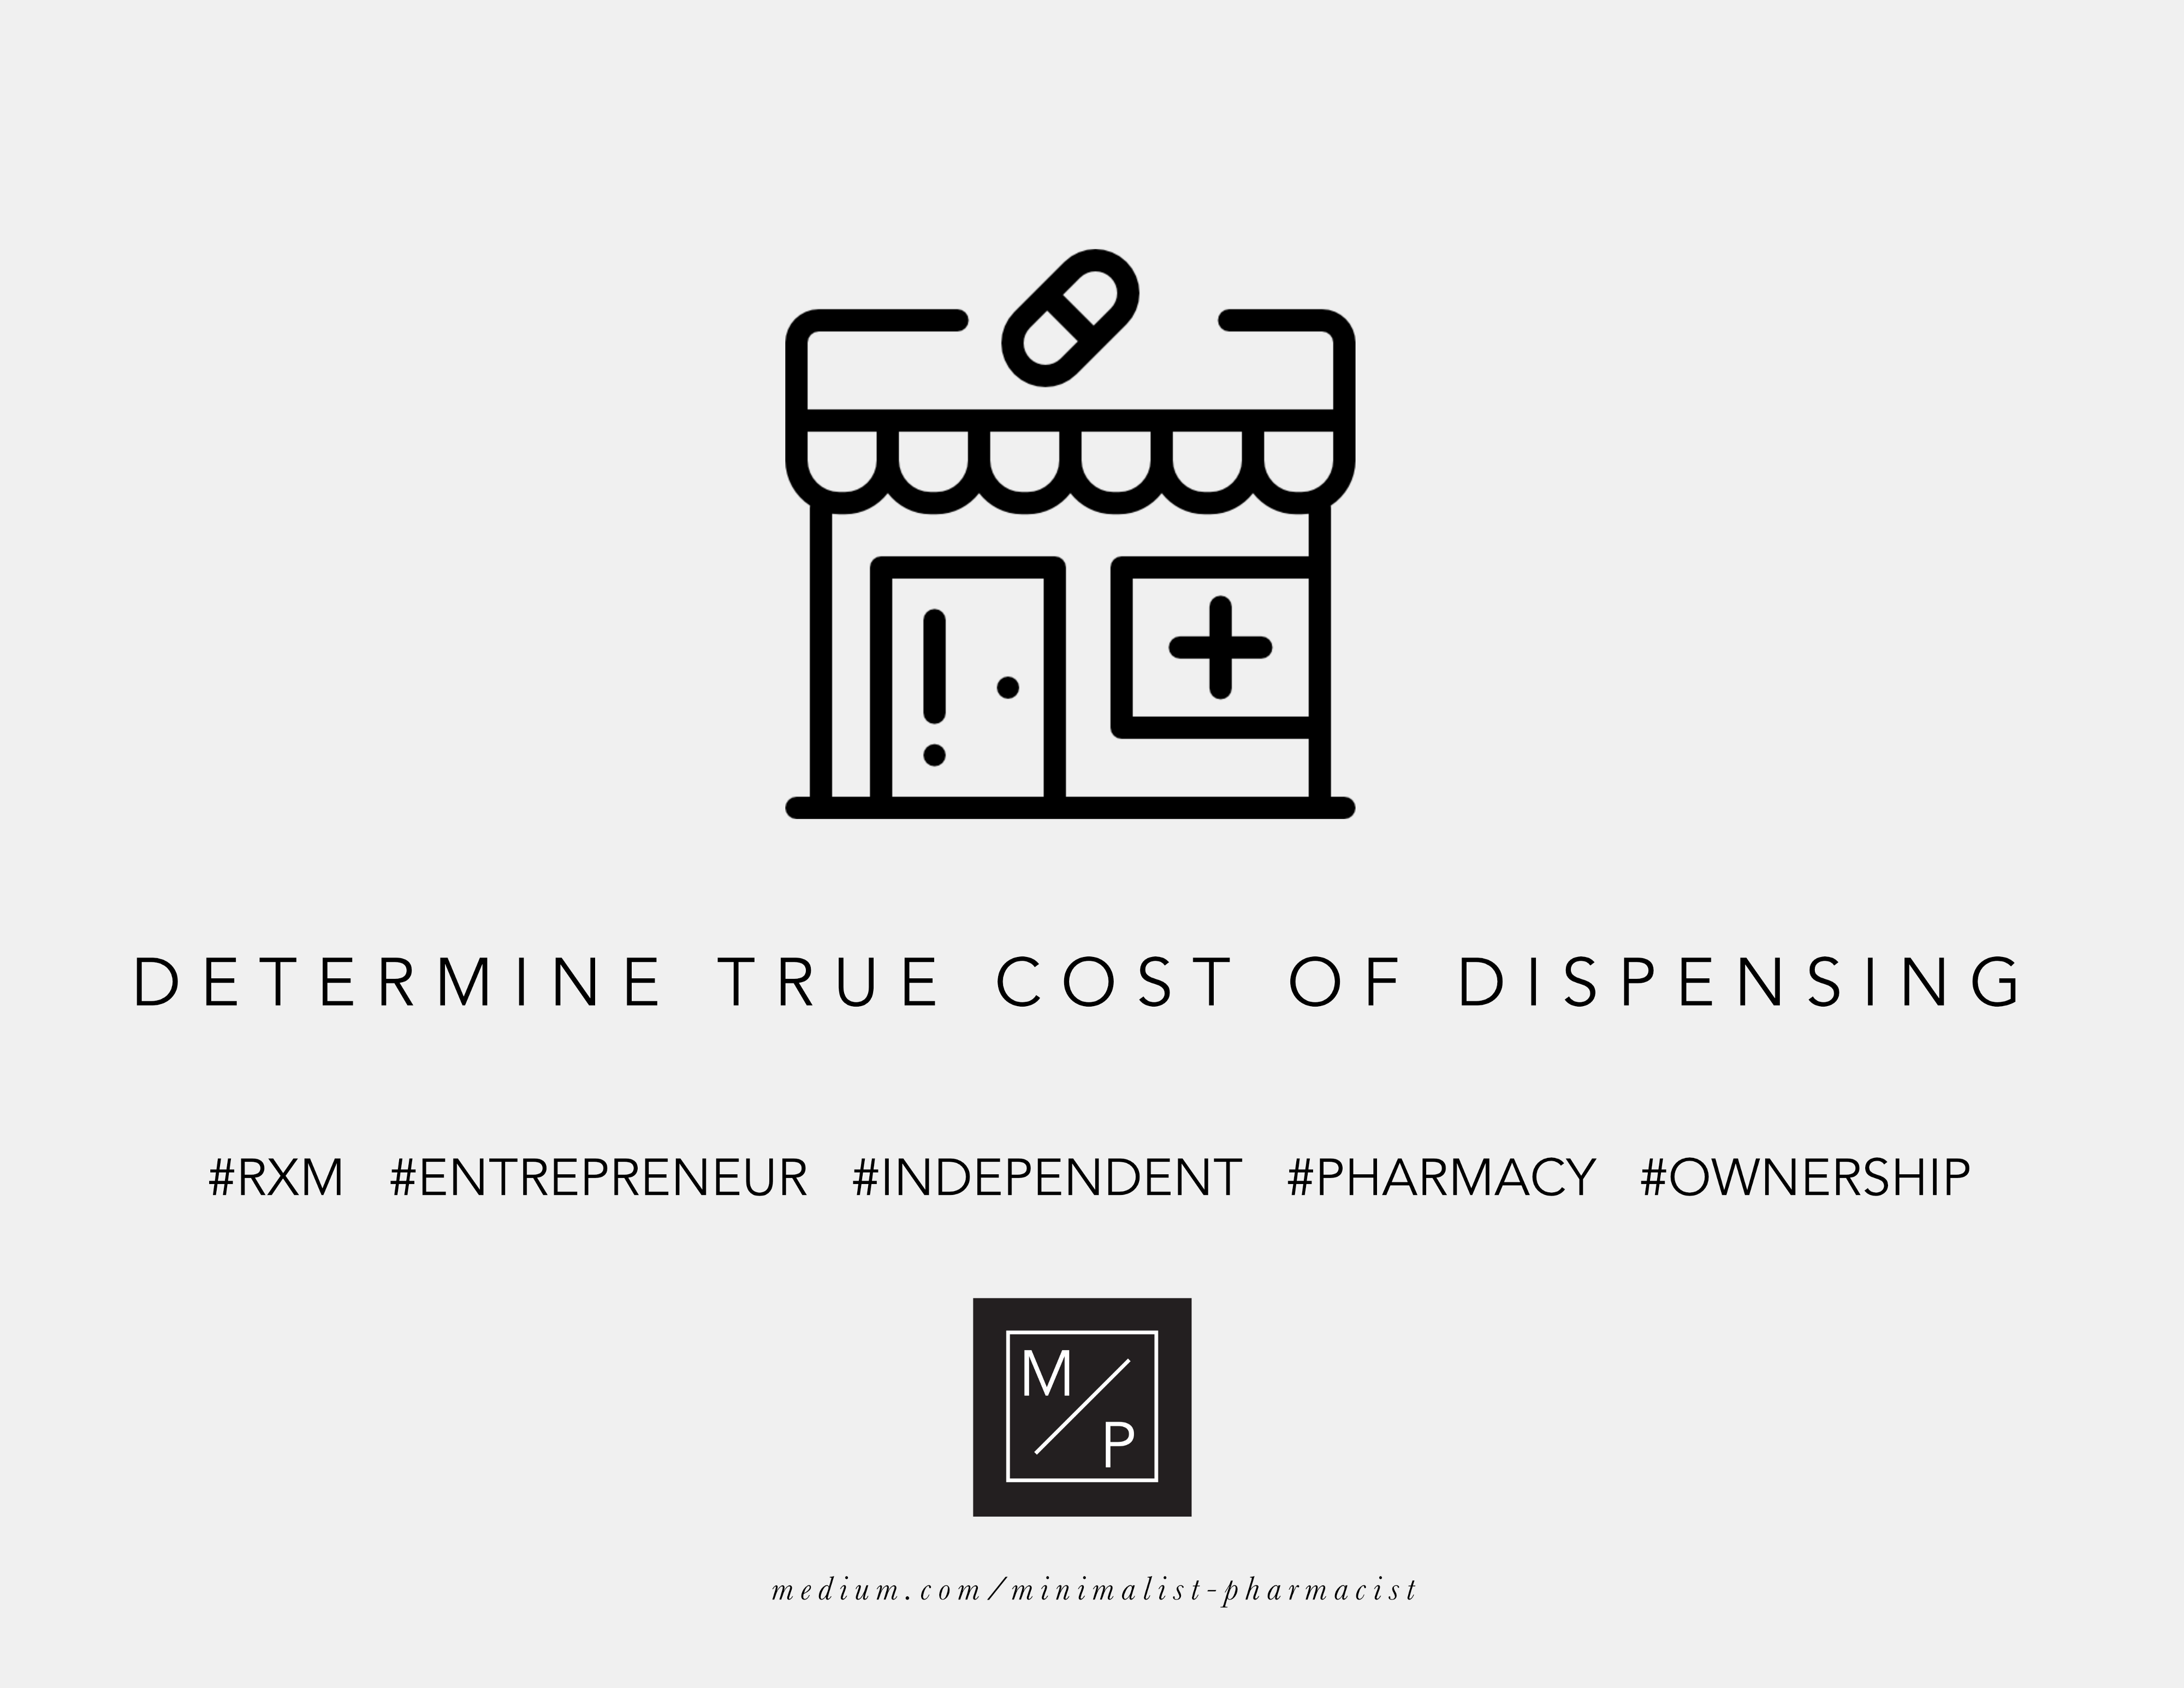 How to Determine The True Cost of Dispensing a Drug